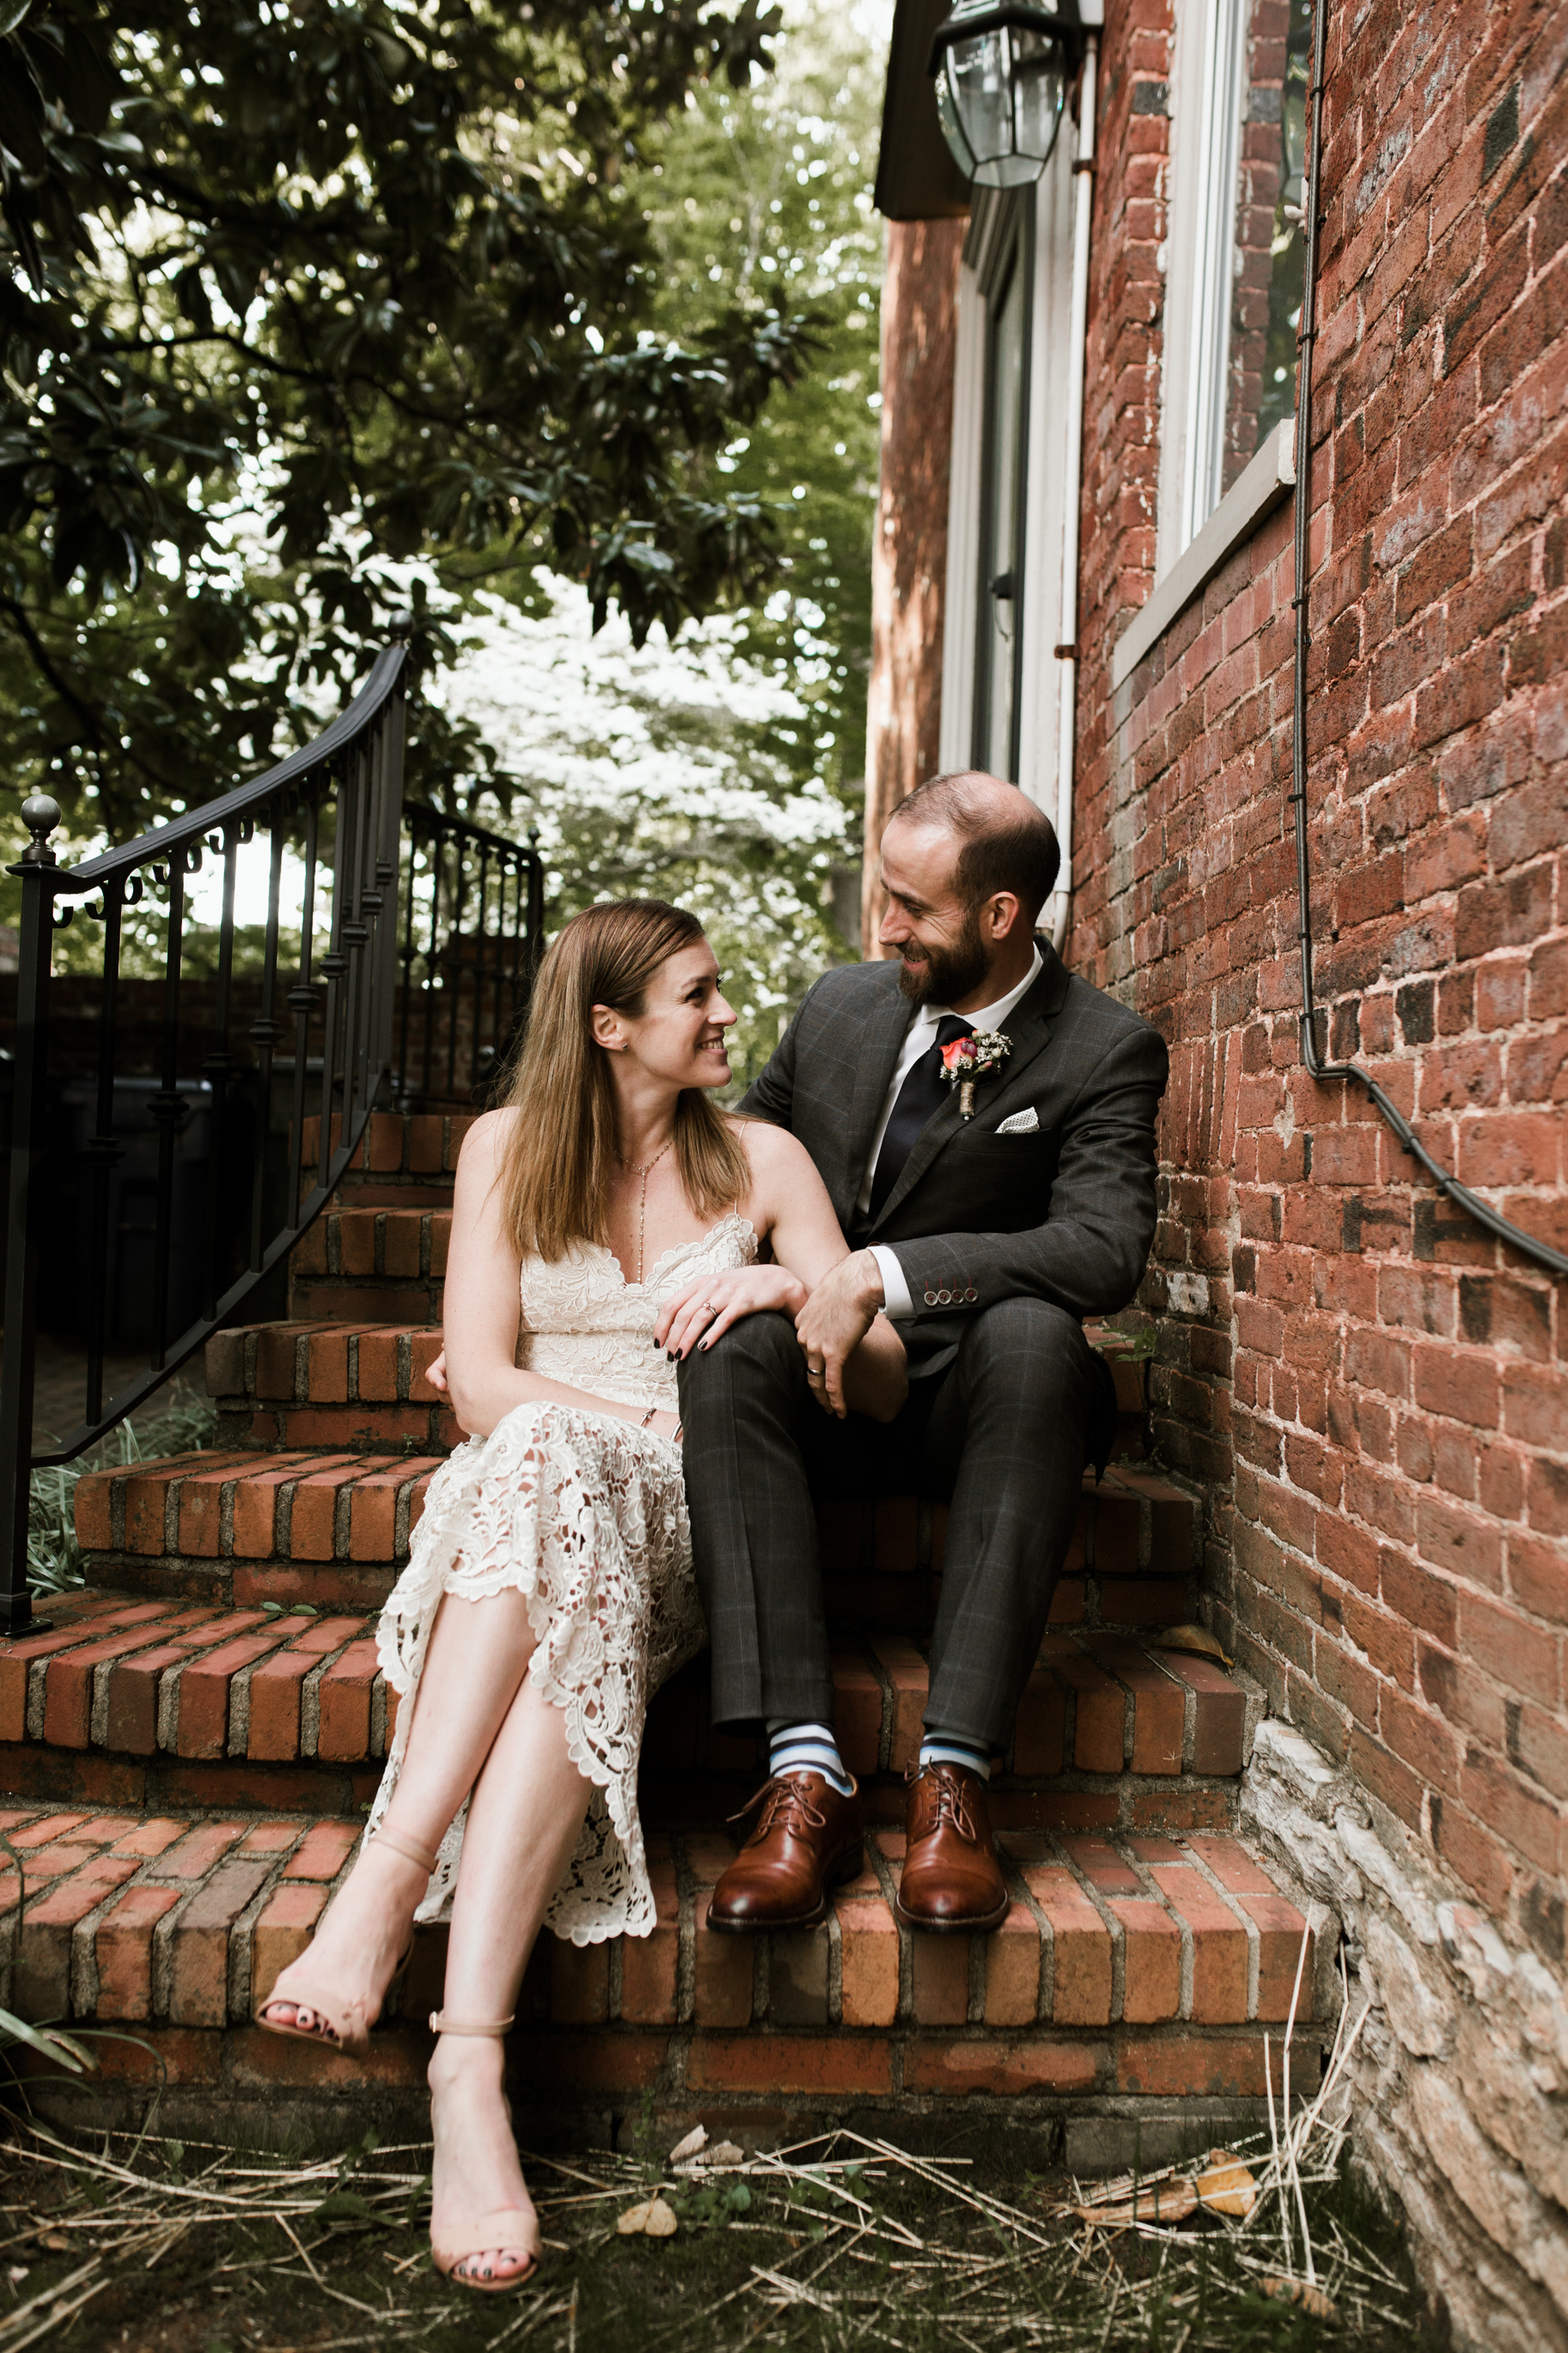 Louisville Courthouse Wedding Louisville Wedding Photographer 2018 Crystal Ludwick Photo Louisville Wedding Photographer Kentucky Wedding Photographer (73 of 76).jpg